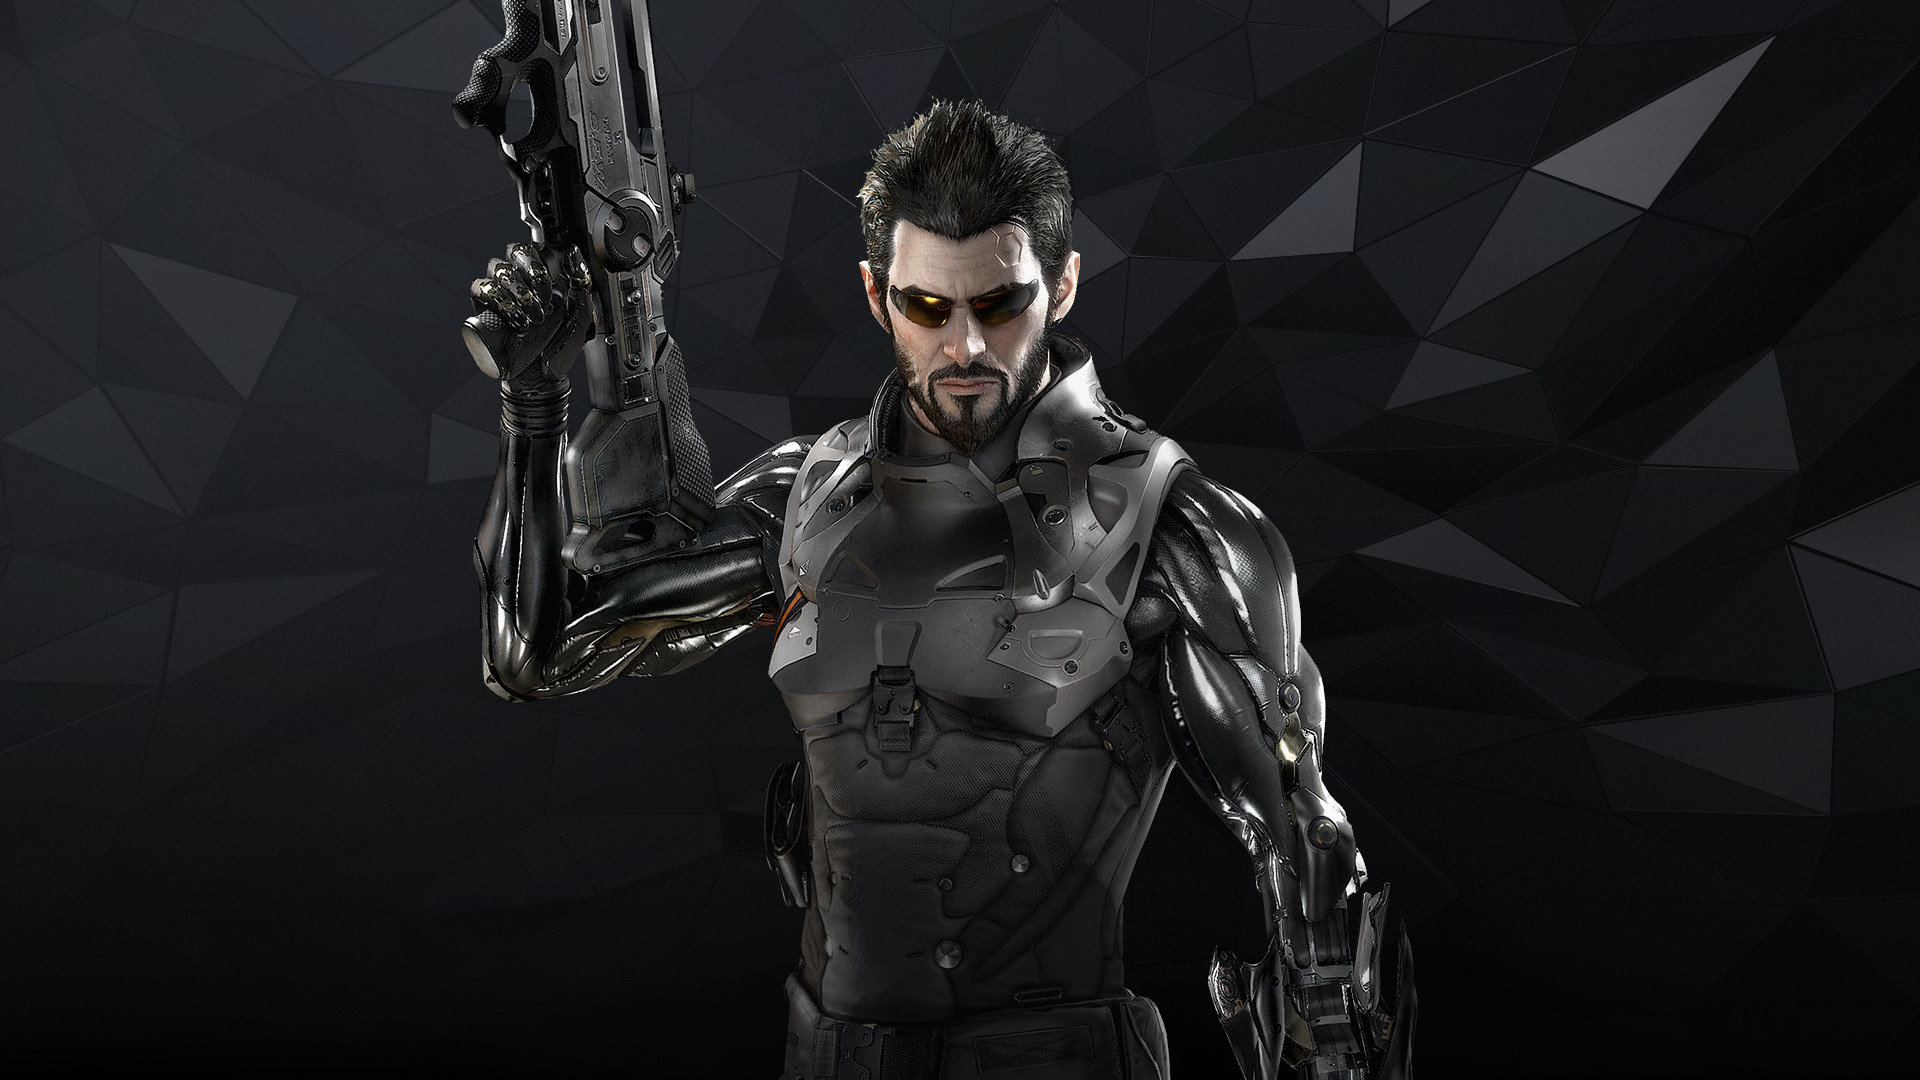 Deus Ex Mankind Divided Wallpapers 1920x1080 Full Hd 1080p